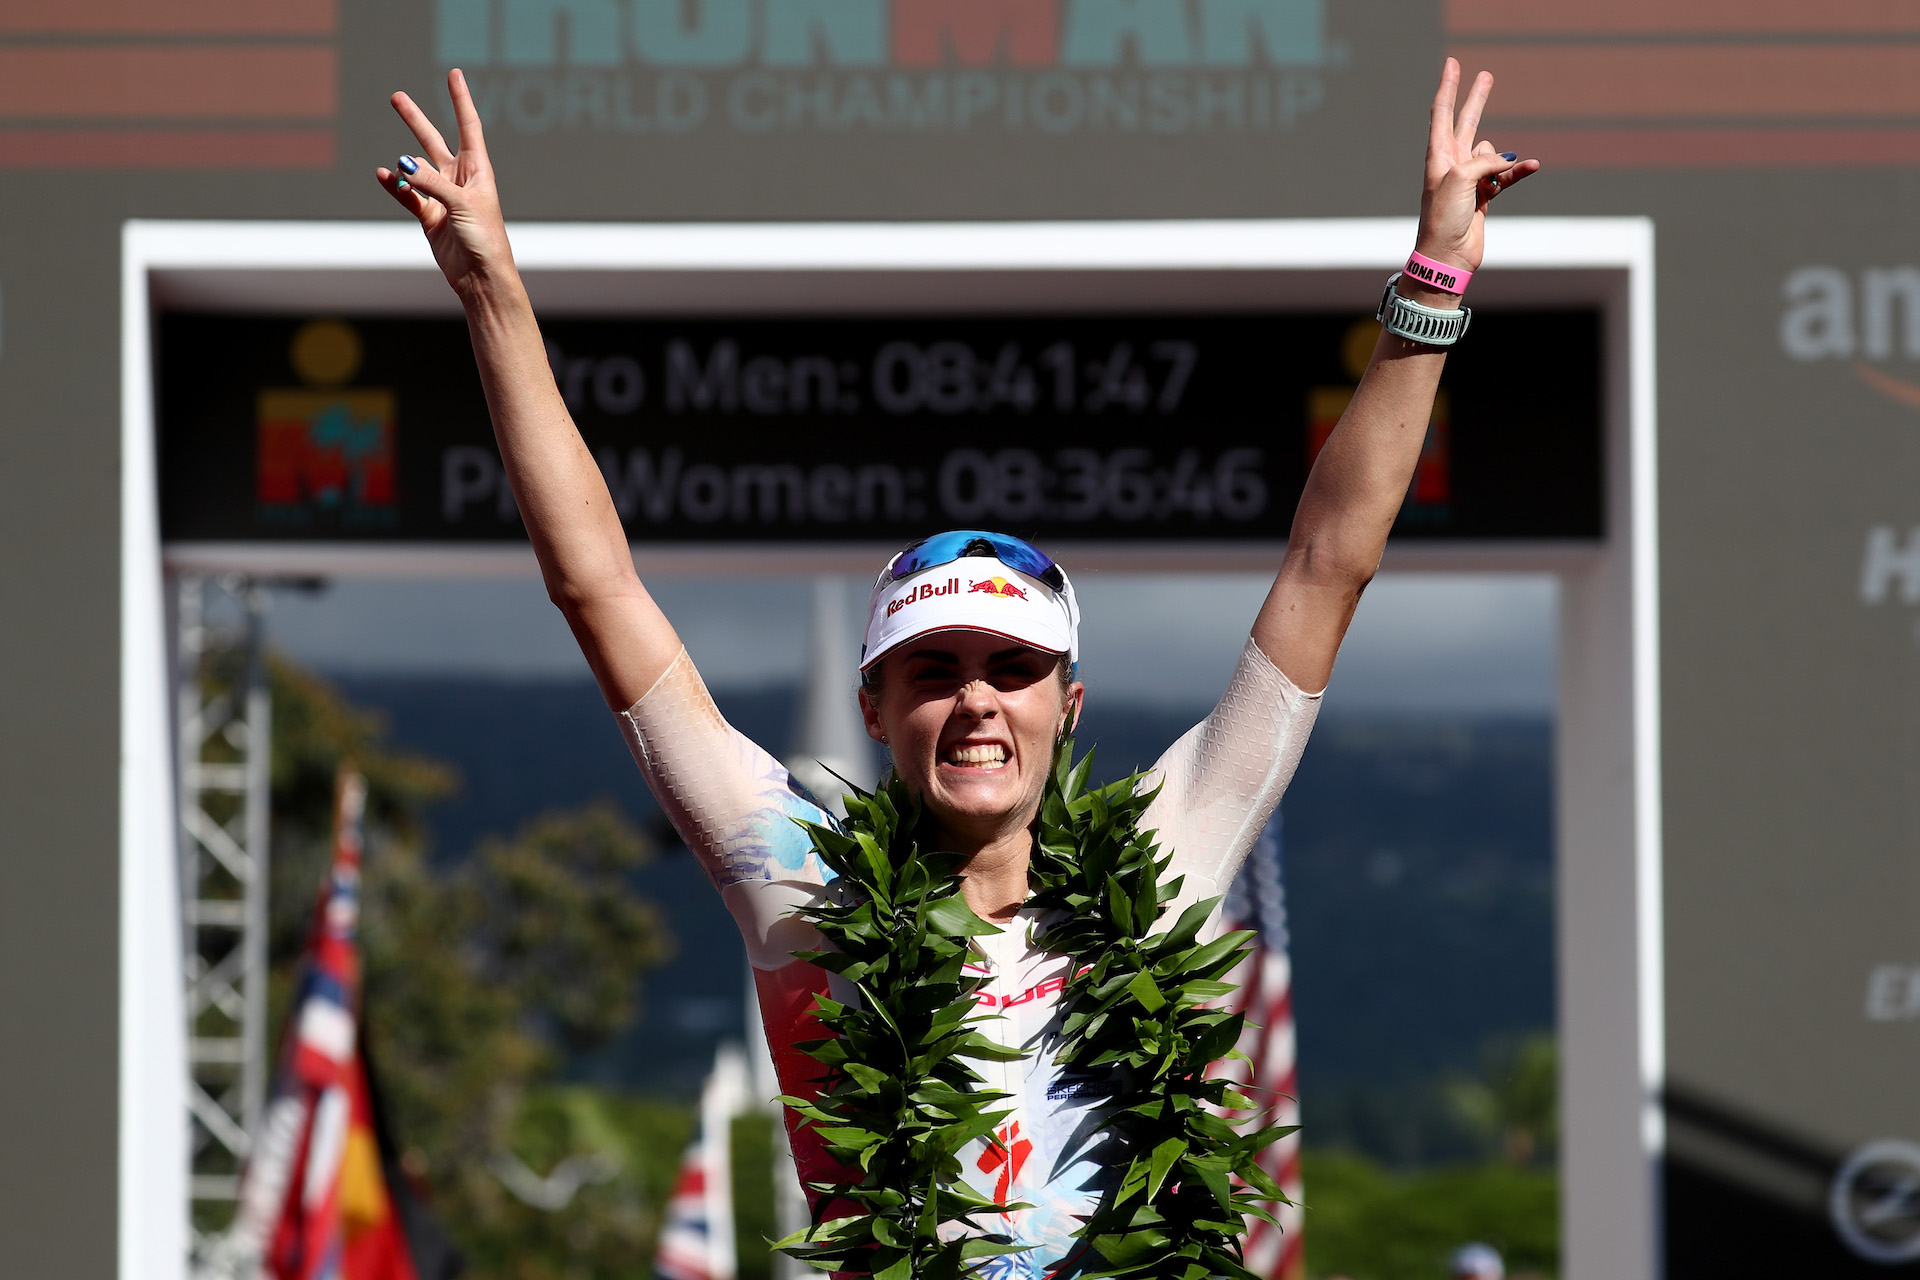 Lucy Charles of Great Britain celebrates after finishing second with a time of 8:36:32 during the IRONMAN World Championships (Photo by Al Bello/Getty Images for IRONMAN)